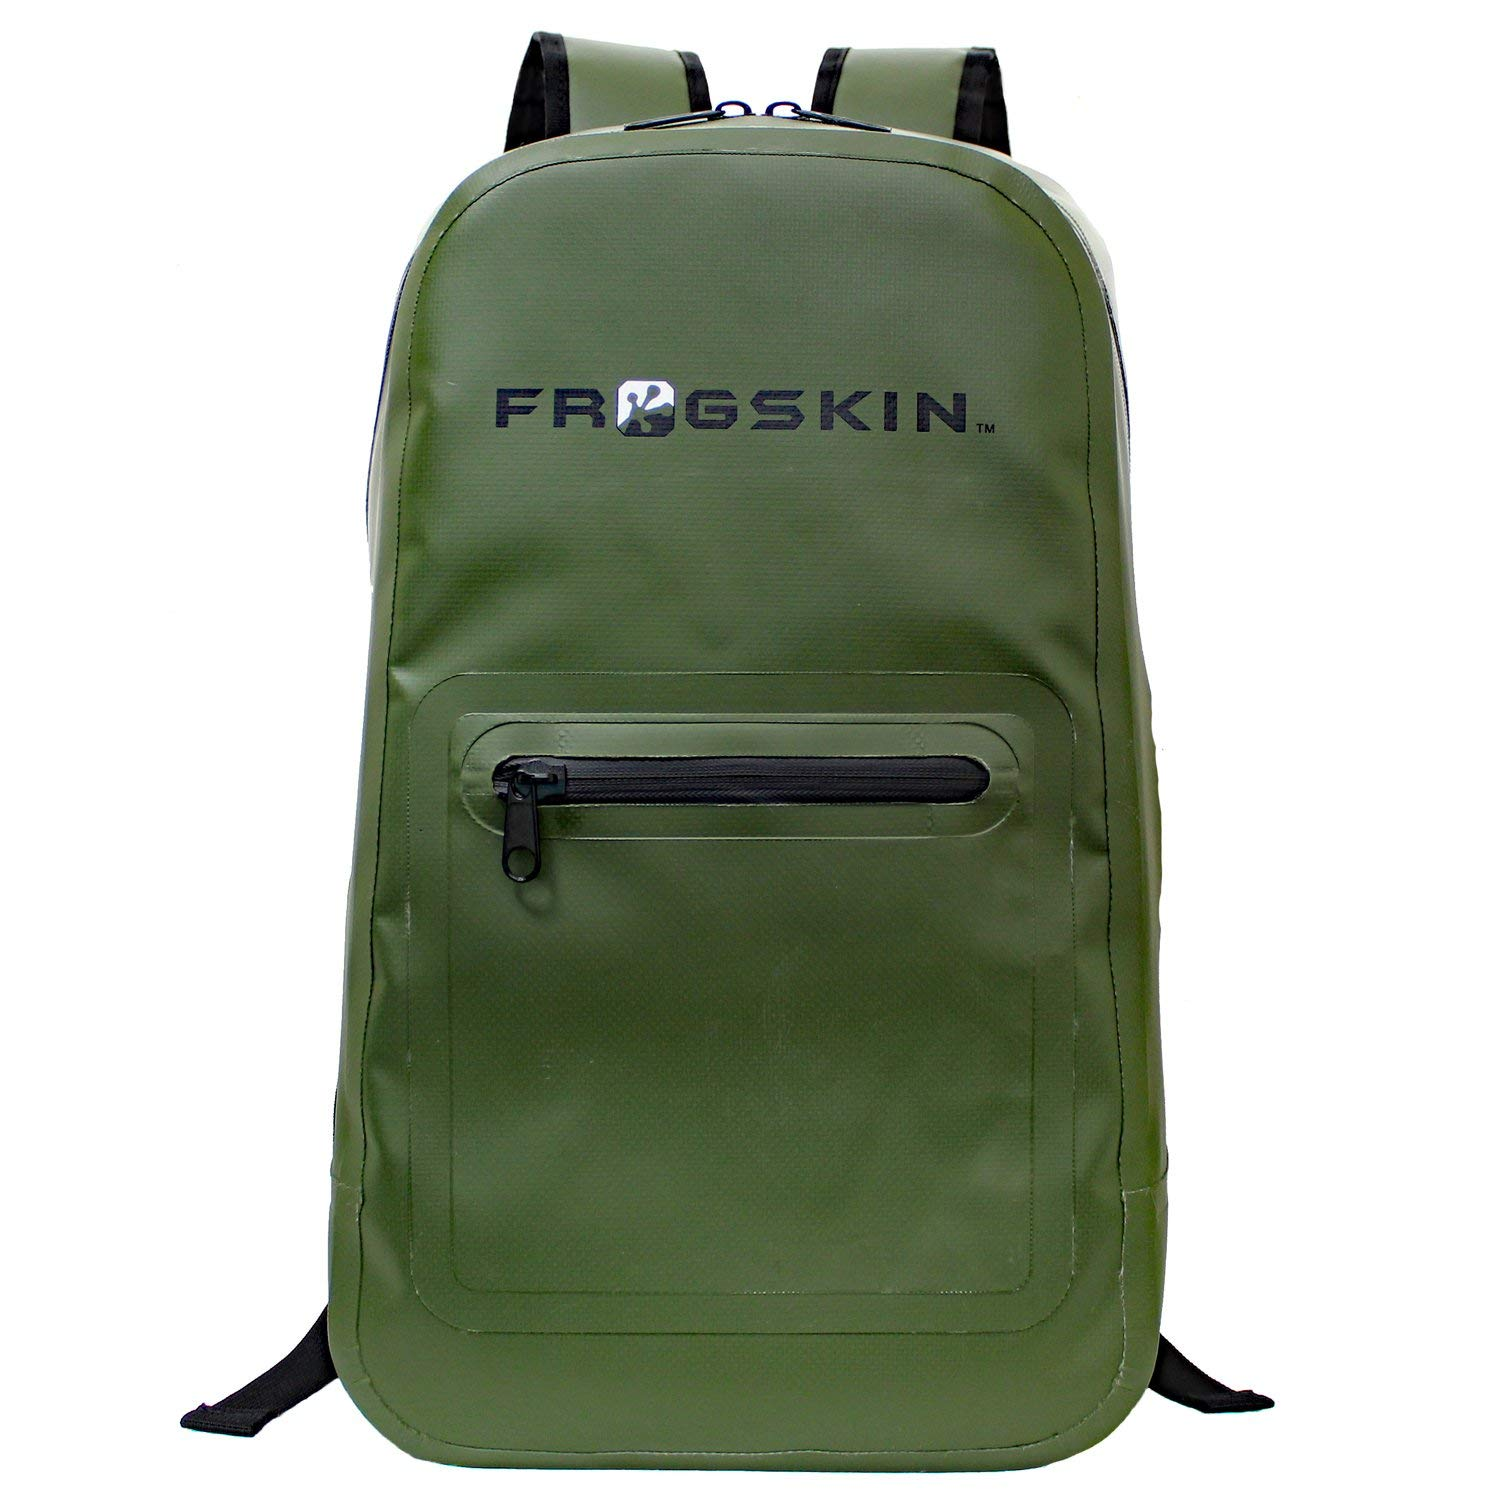 d41b25882dc5 Frogskin Waterproof Puncture Tear Resistant Indoor Outdoor Dry Bags and  Backpacks for Phones Gear Travel